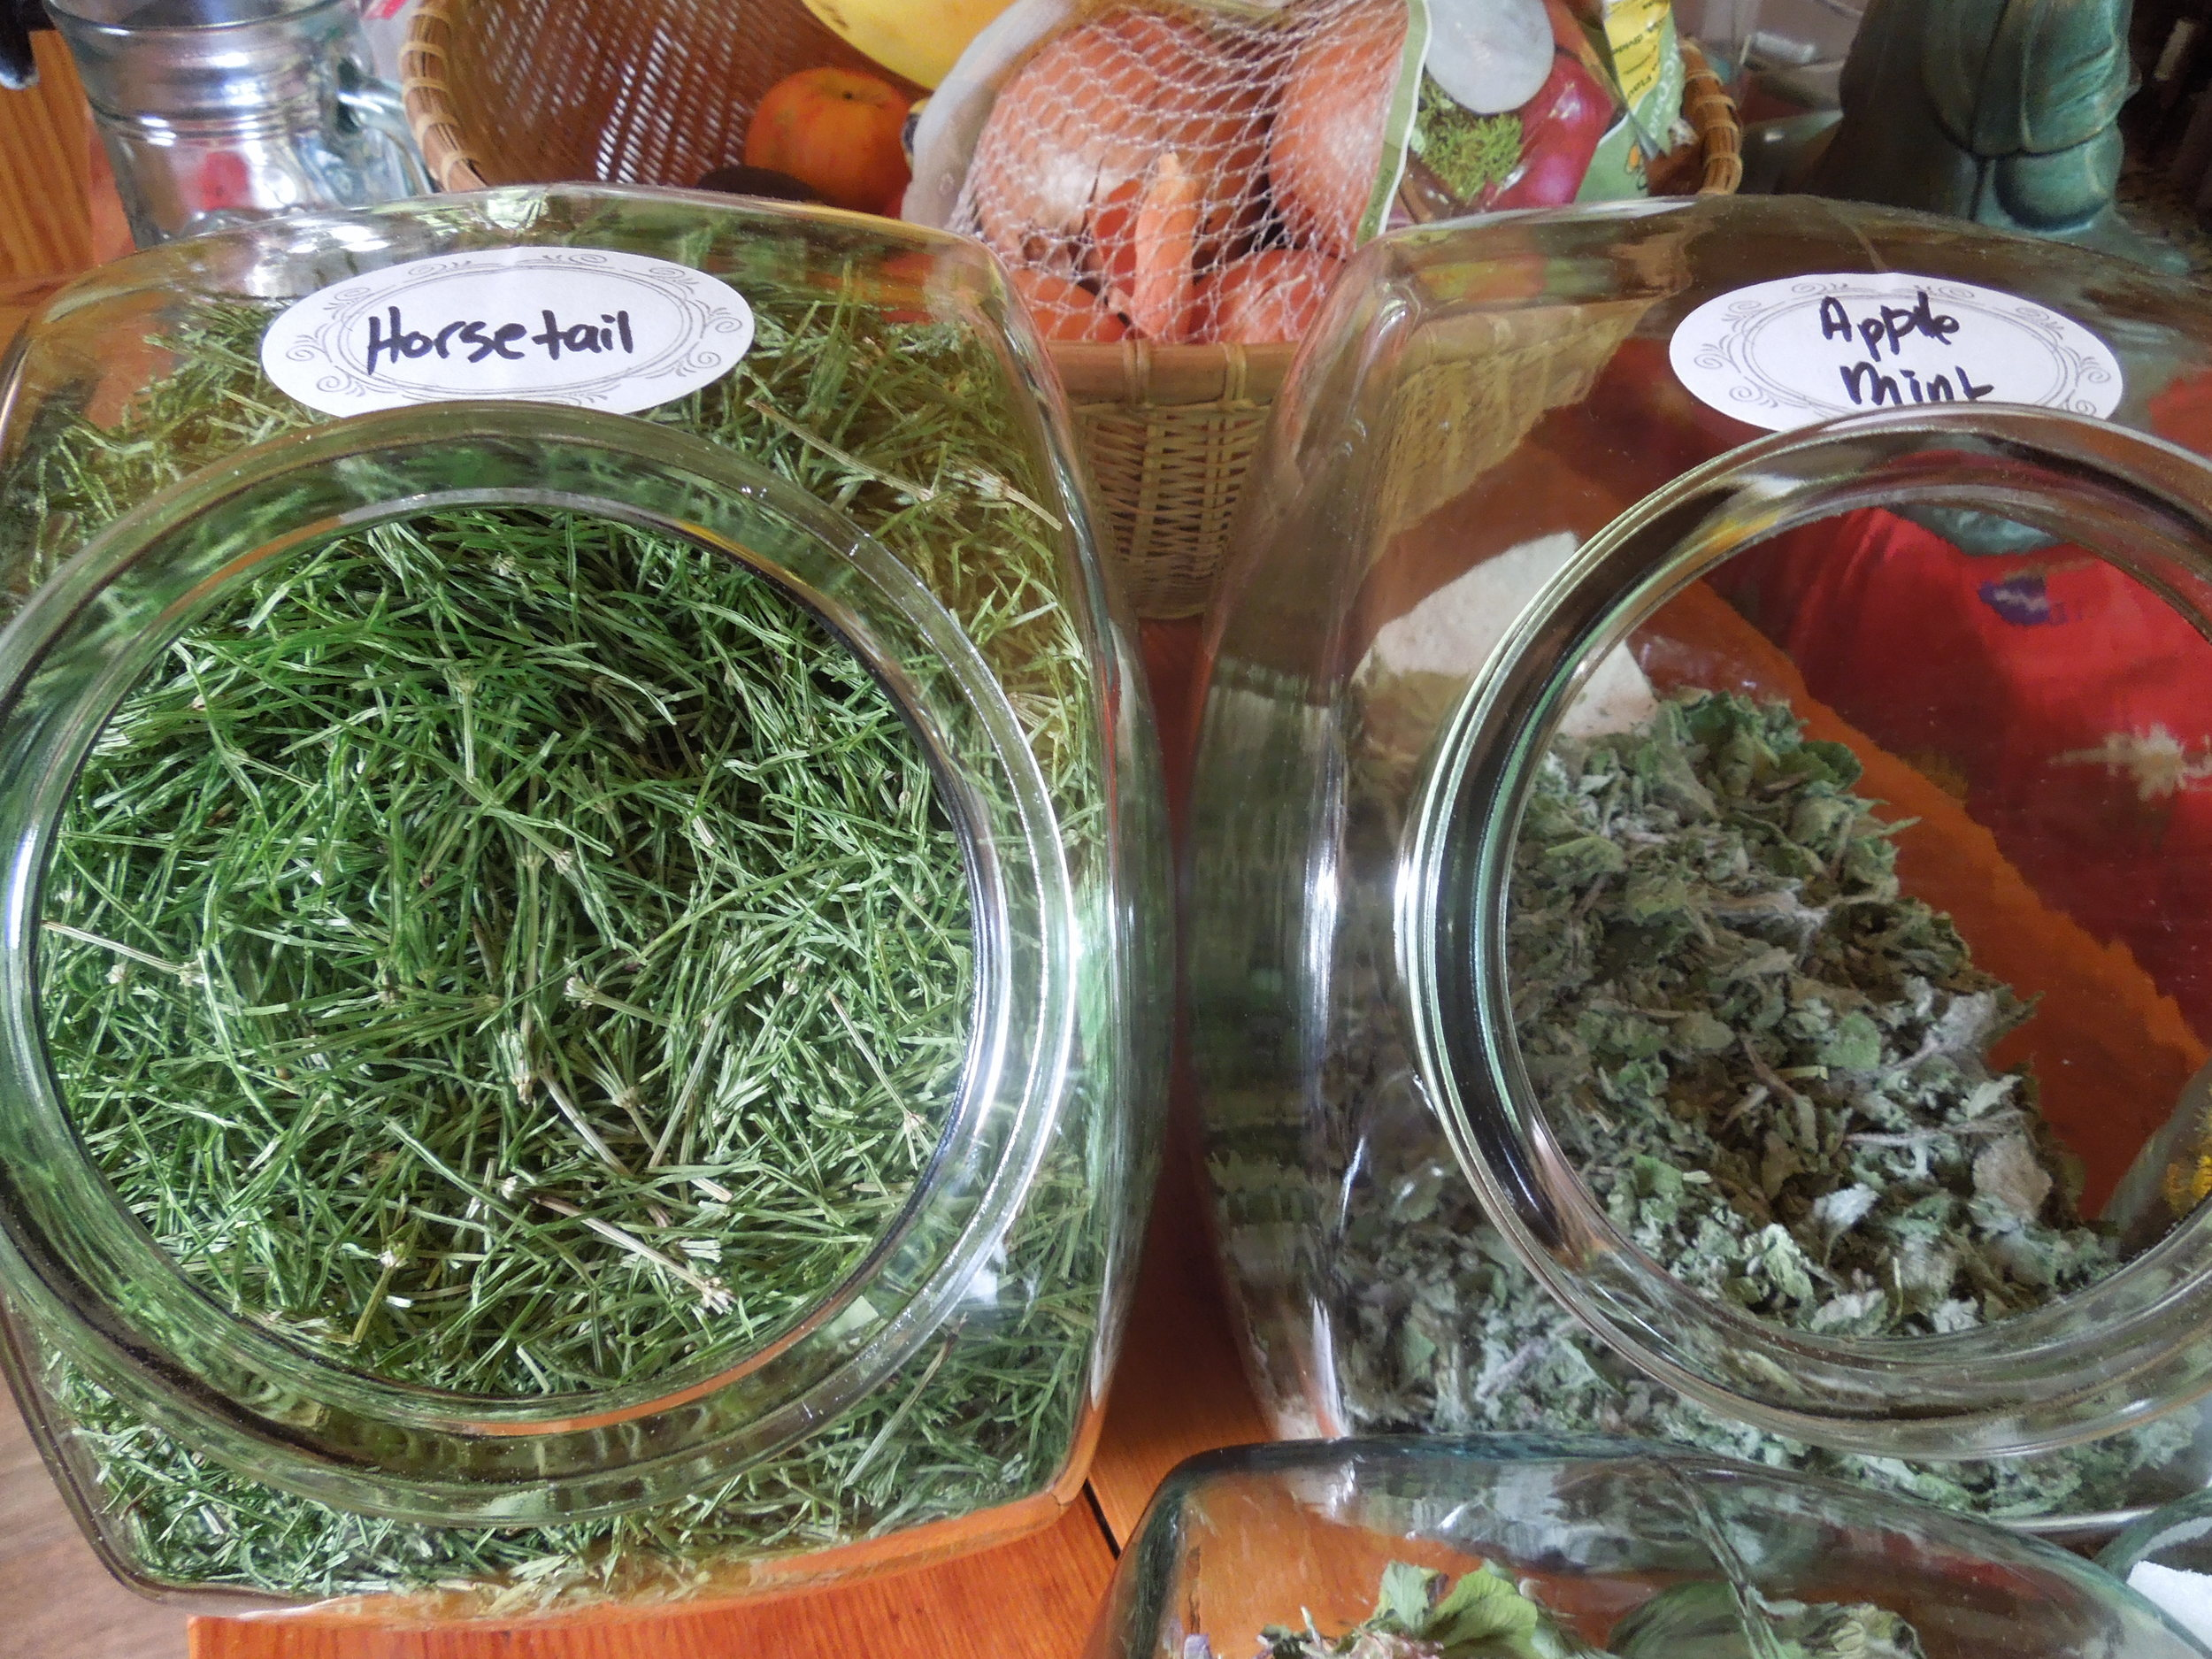 Horsetail and Apple Mint